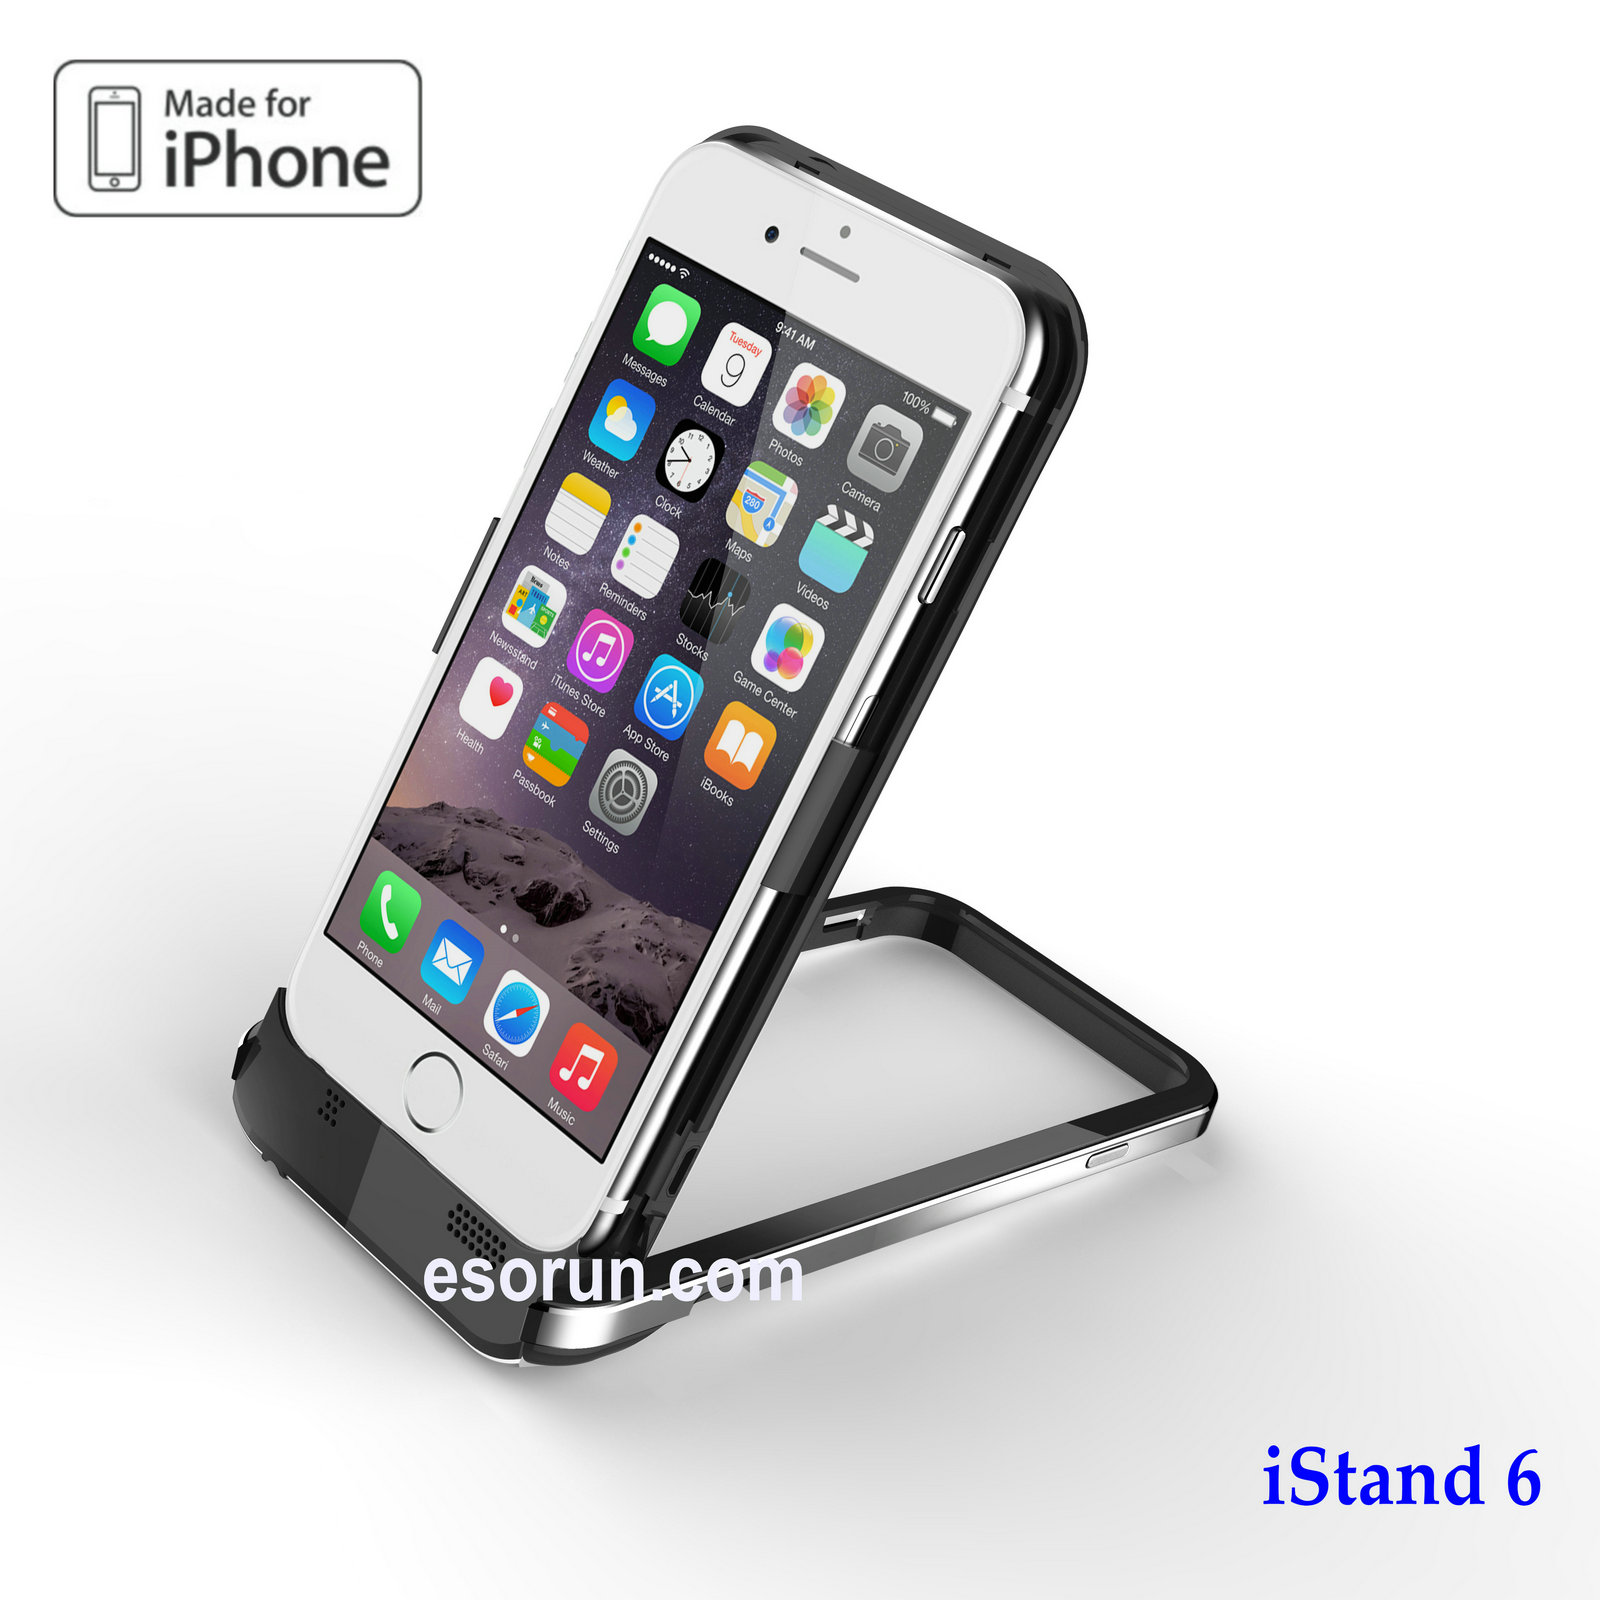 iStand 6-iPhone 6 battery case